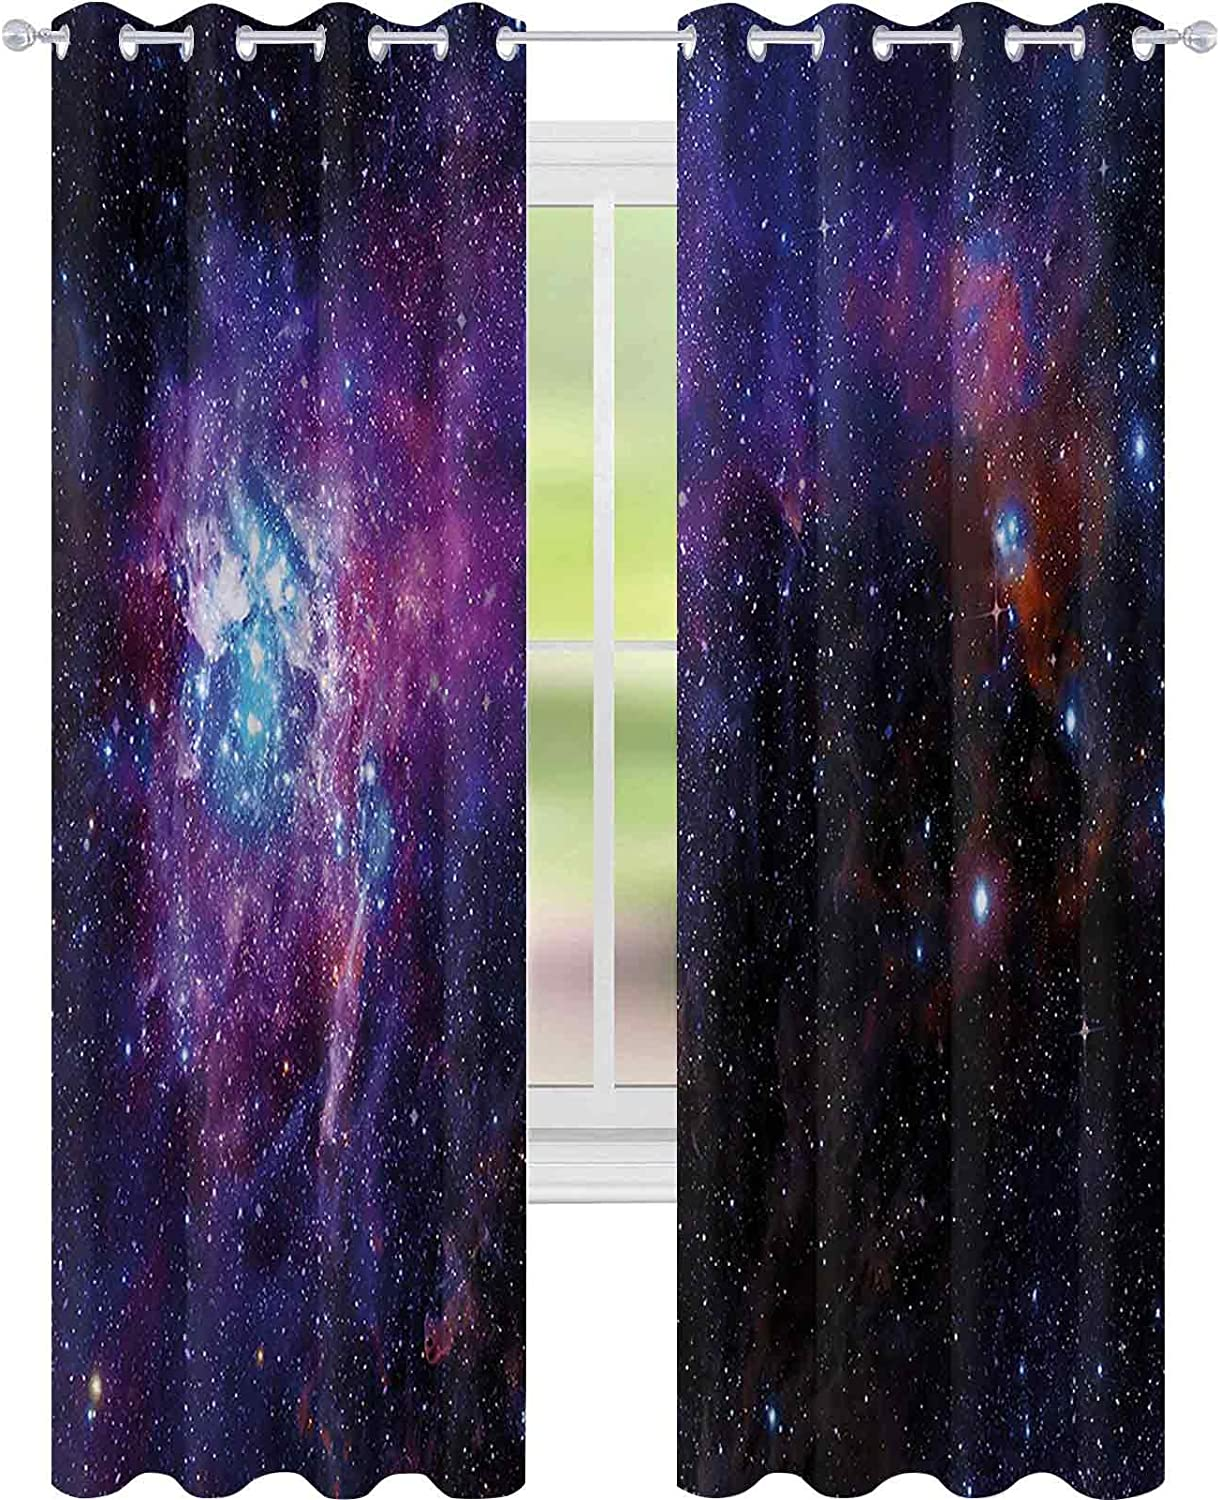 Light Blocking Curtains Starry Industry No. 1 Night Cloud The Challenge the lowest price of Japan ☆ Celestial Nebula